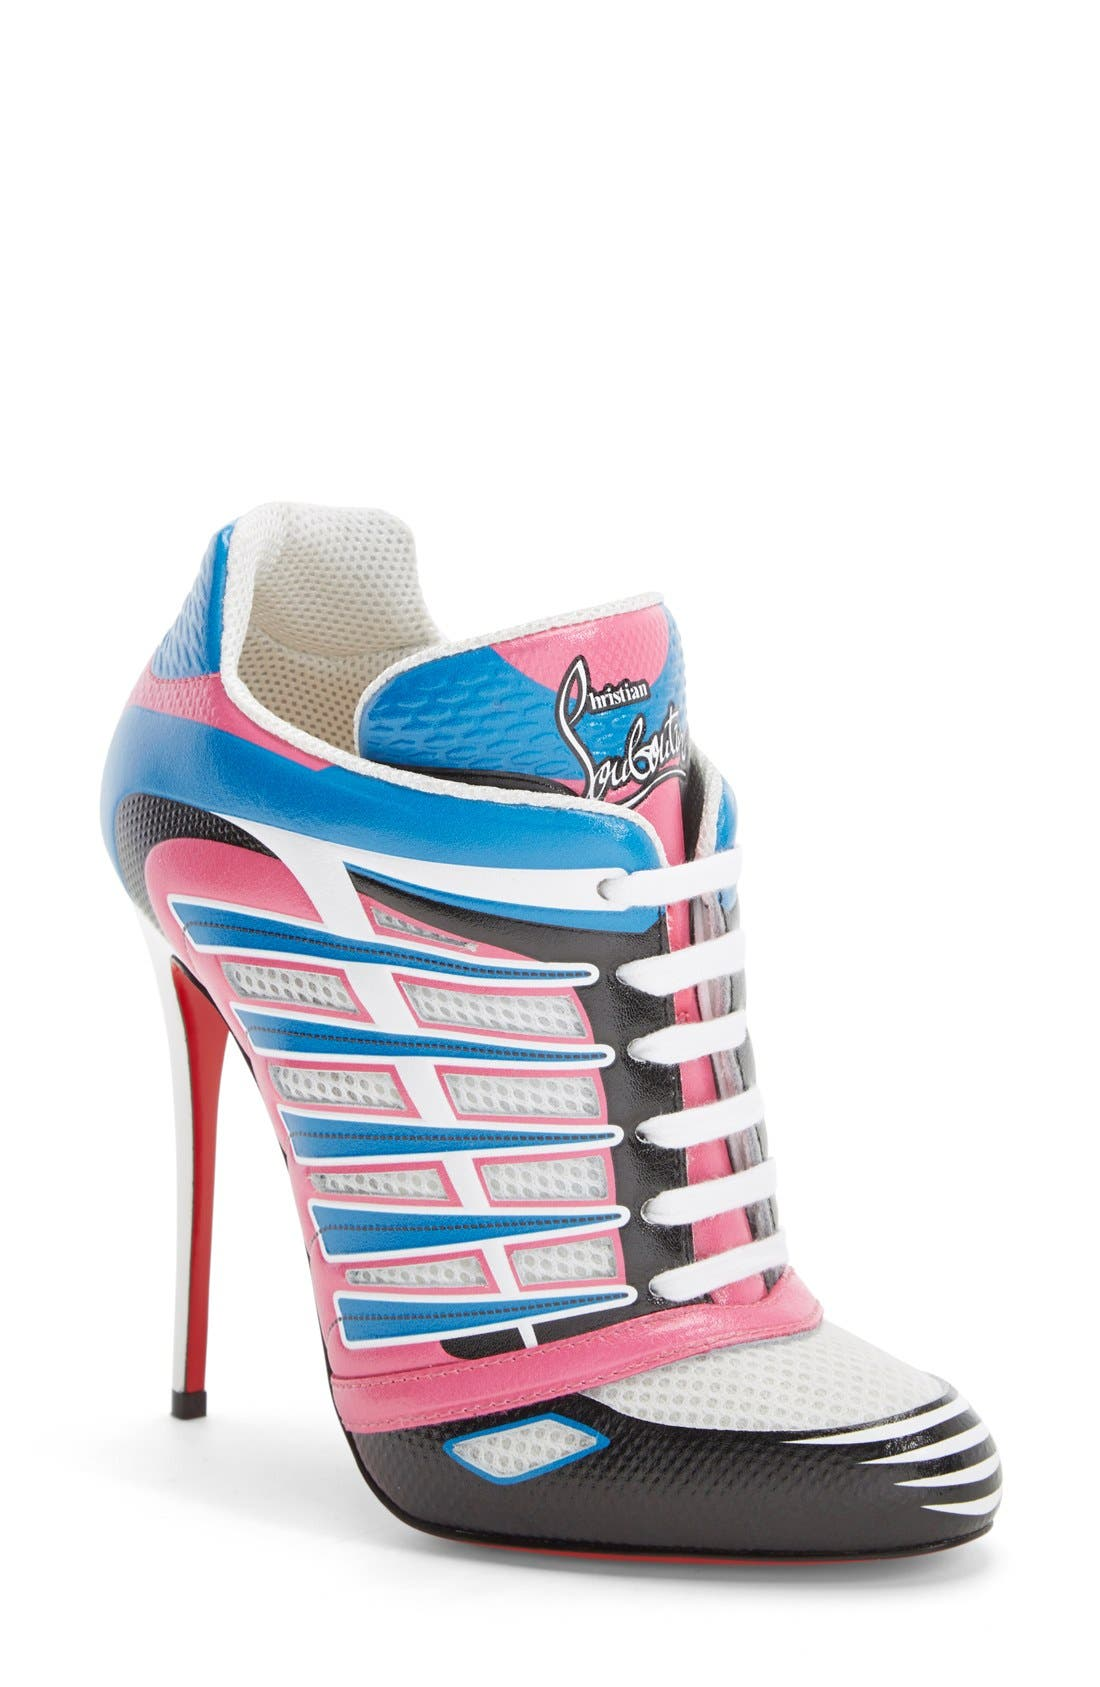 Main Image - Christian Louboutin 'Boltina' Lace-Up Bootie